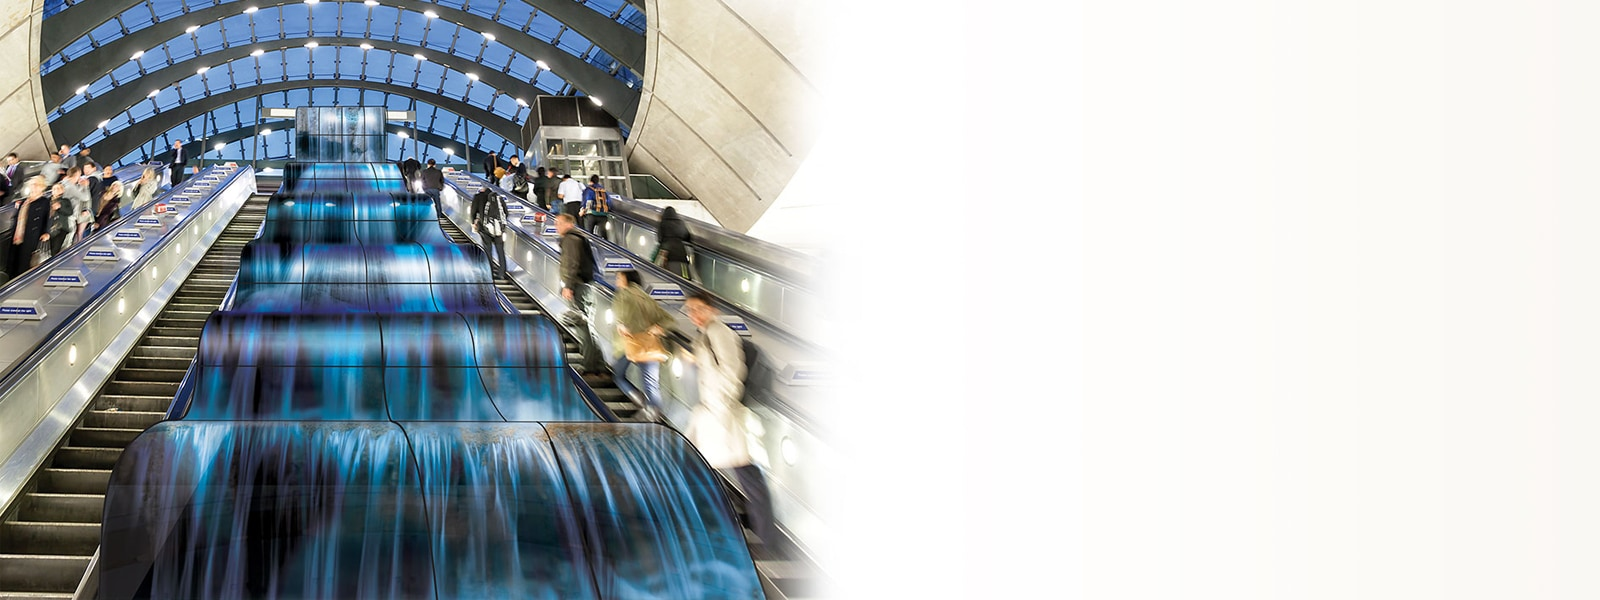 Lifestyle_55EF5E_Airport_Waterfall_bright-D-v6